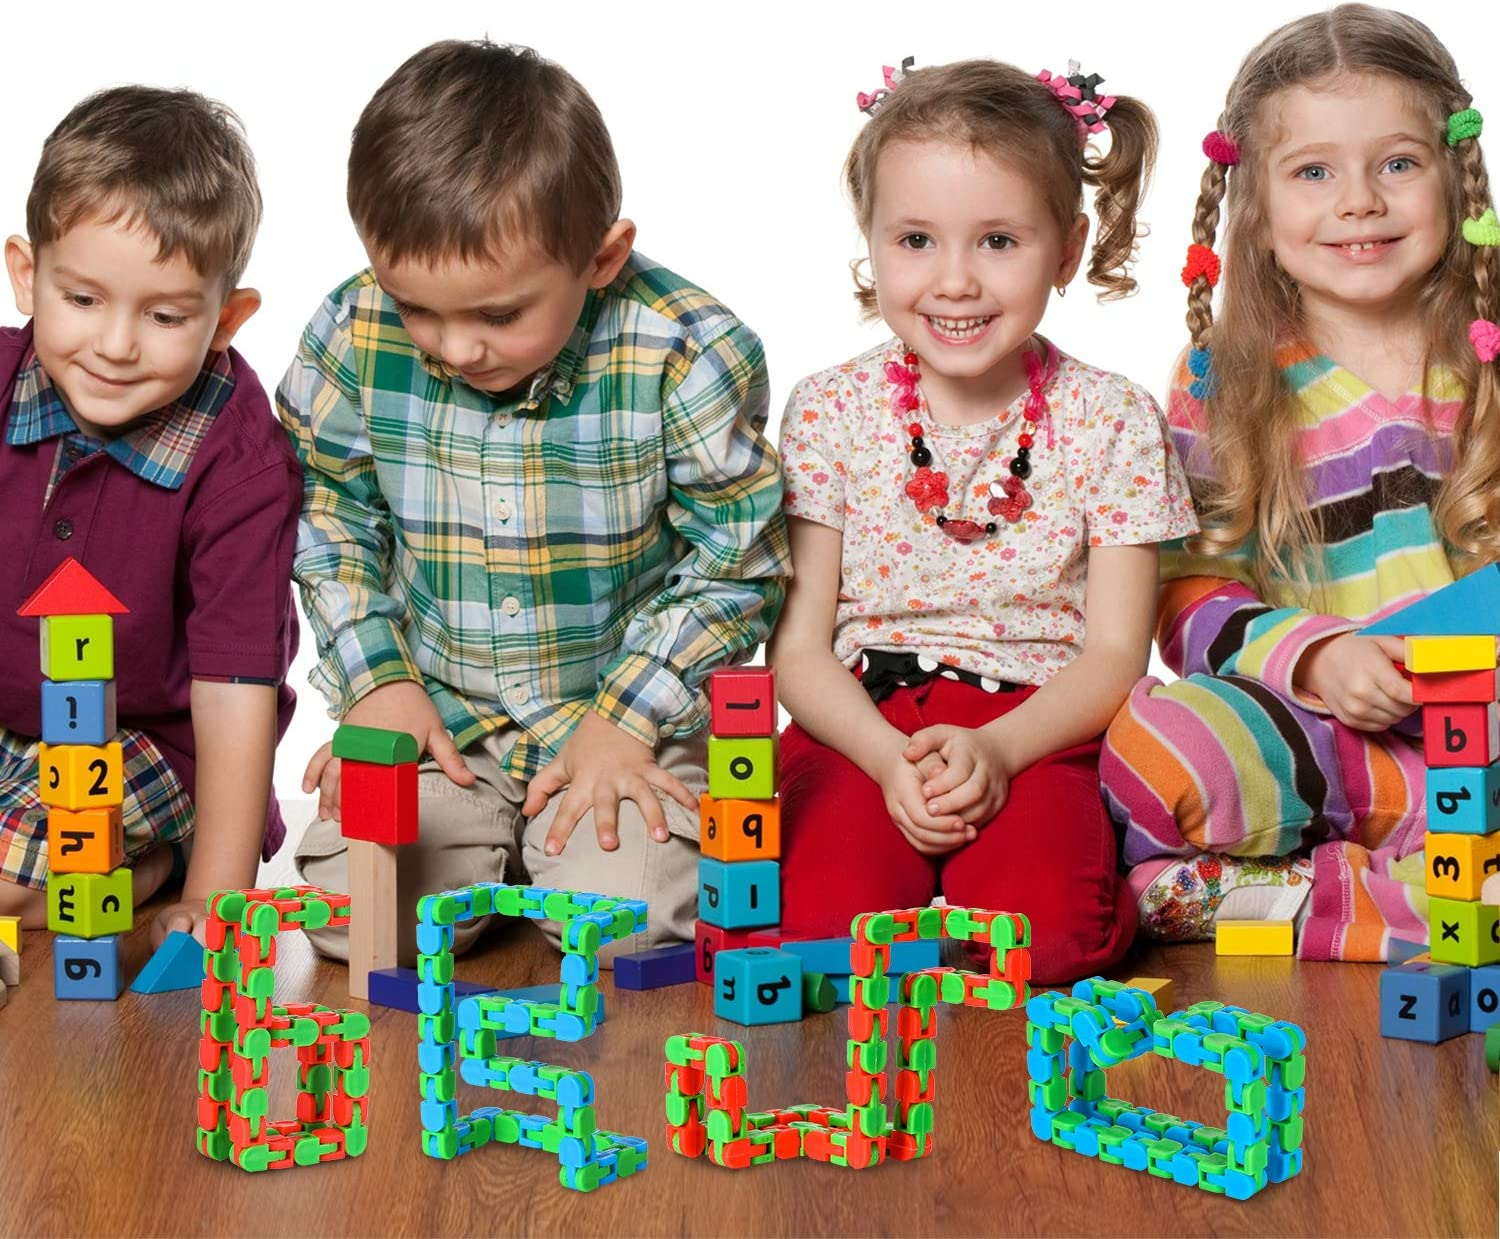 Boao 6 Pieces 22 Inches 48 Parts Wacky Tracks Snake Cube Puzzles Snap and Click Sensory Fidget Toys for Stress Relief or Party Bag Fillers Party Toys Multicolor